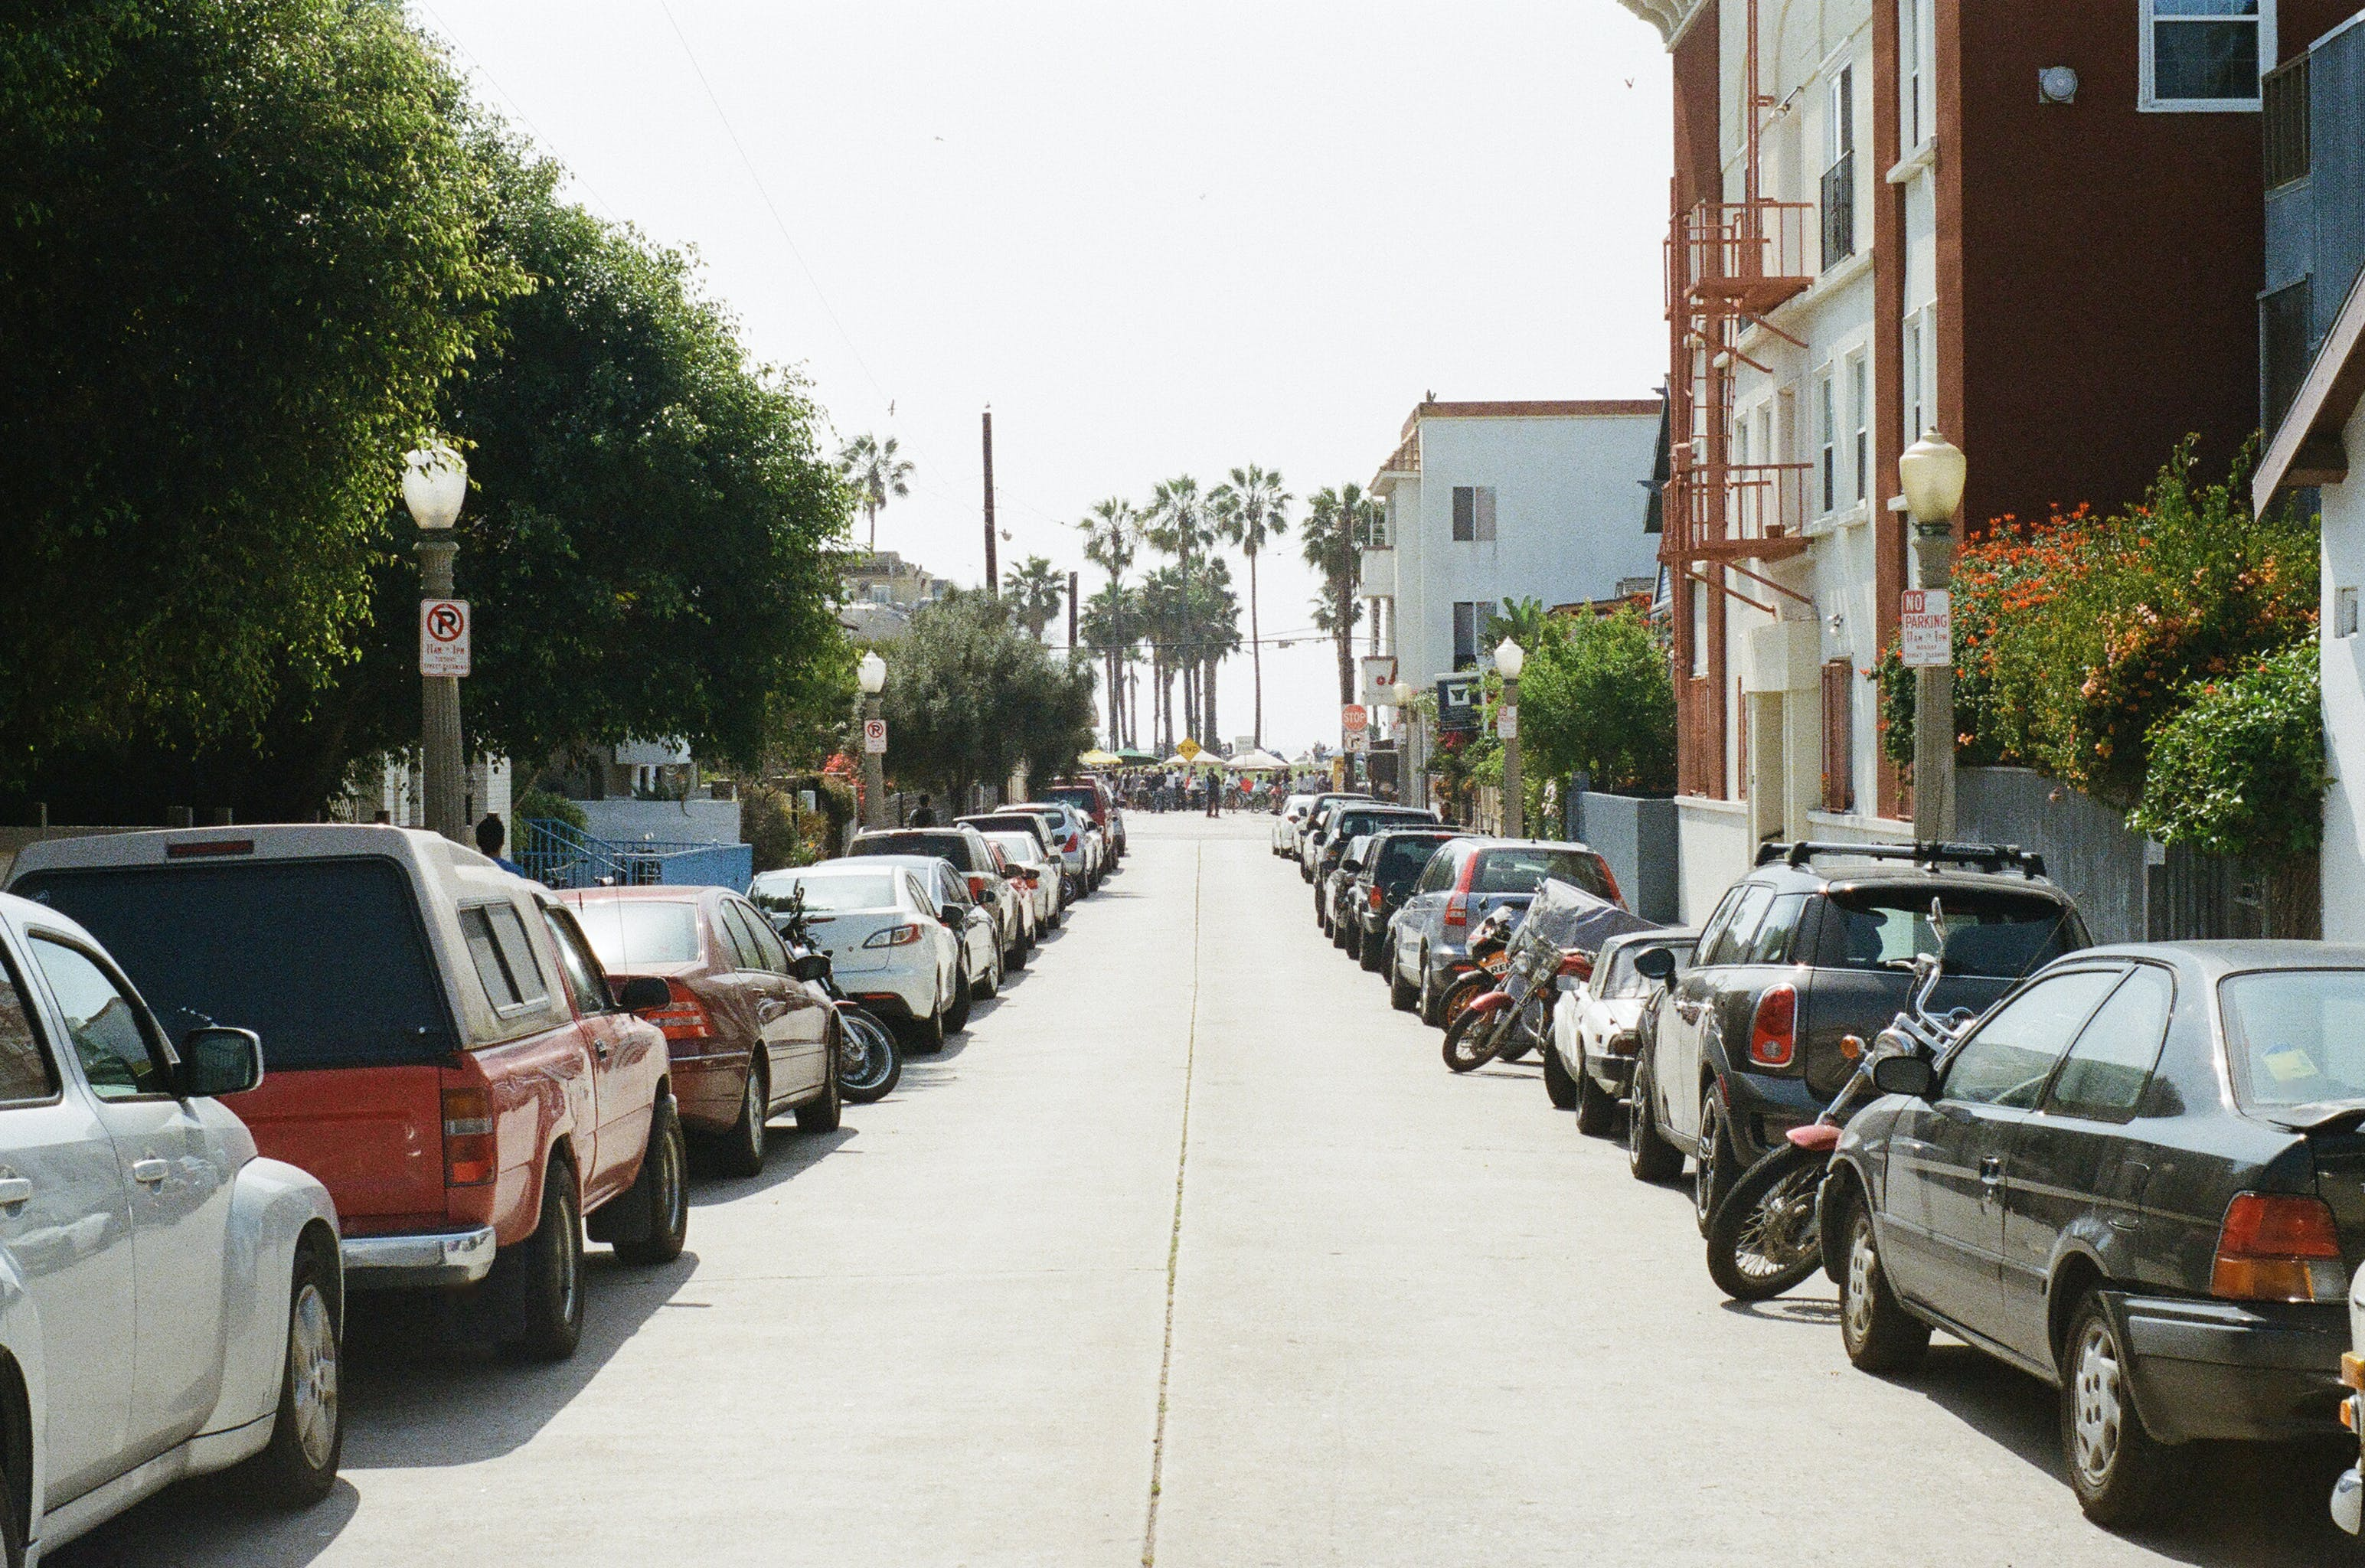 Vehicles Parked on Sidewalk